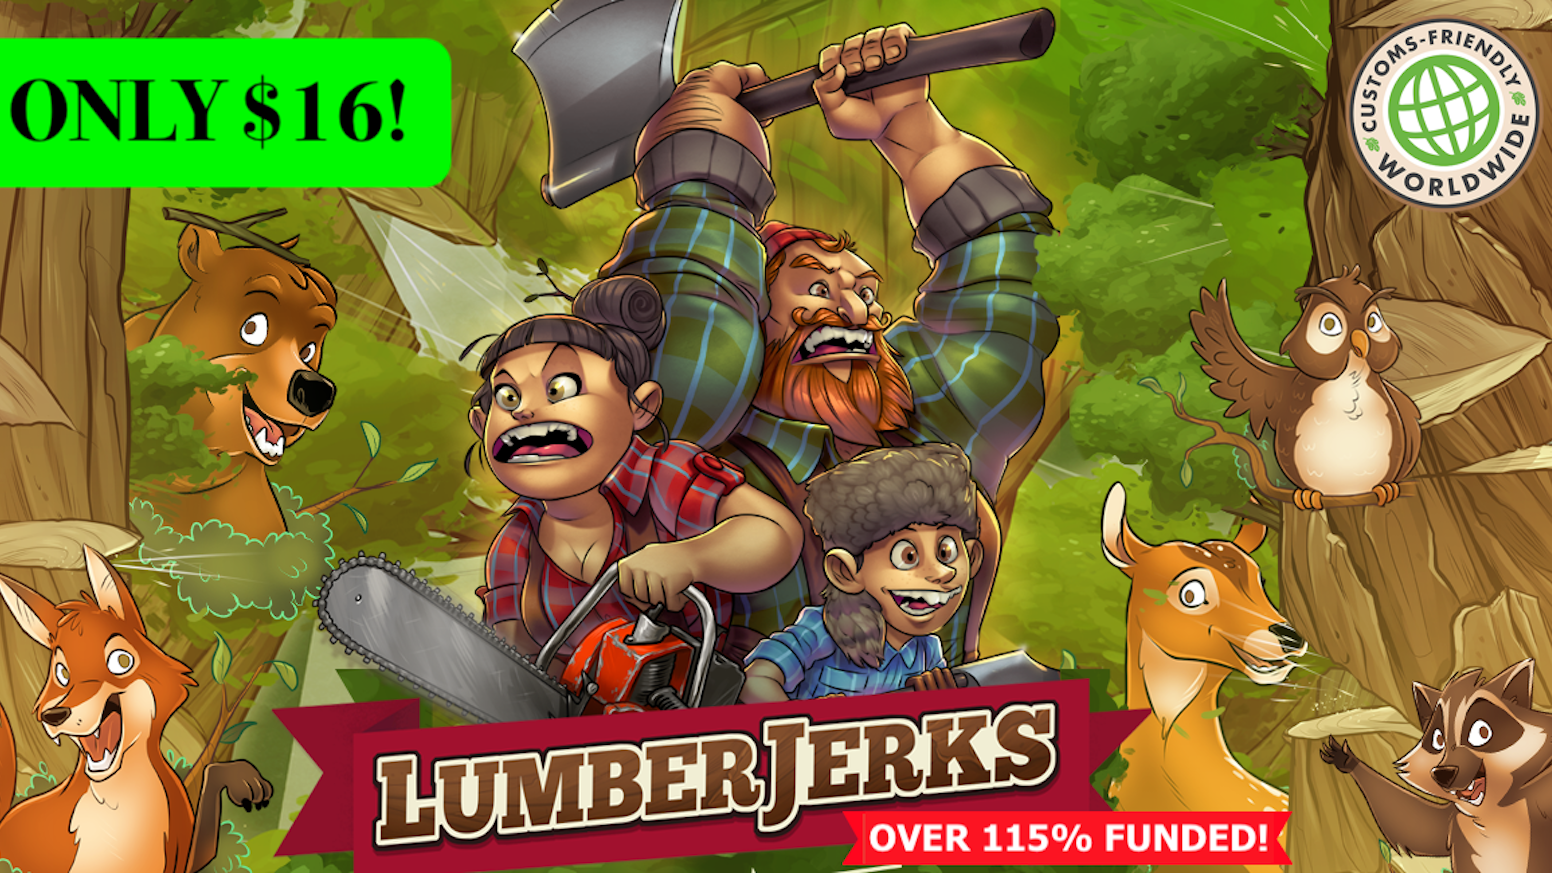 A fast-paced, take-that, lumberjack card game for 1-5 players. Chop block your friends and yell timber!